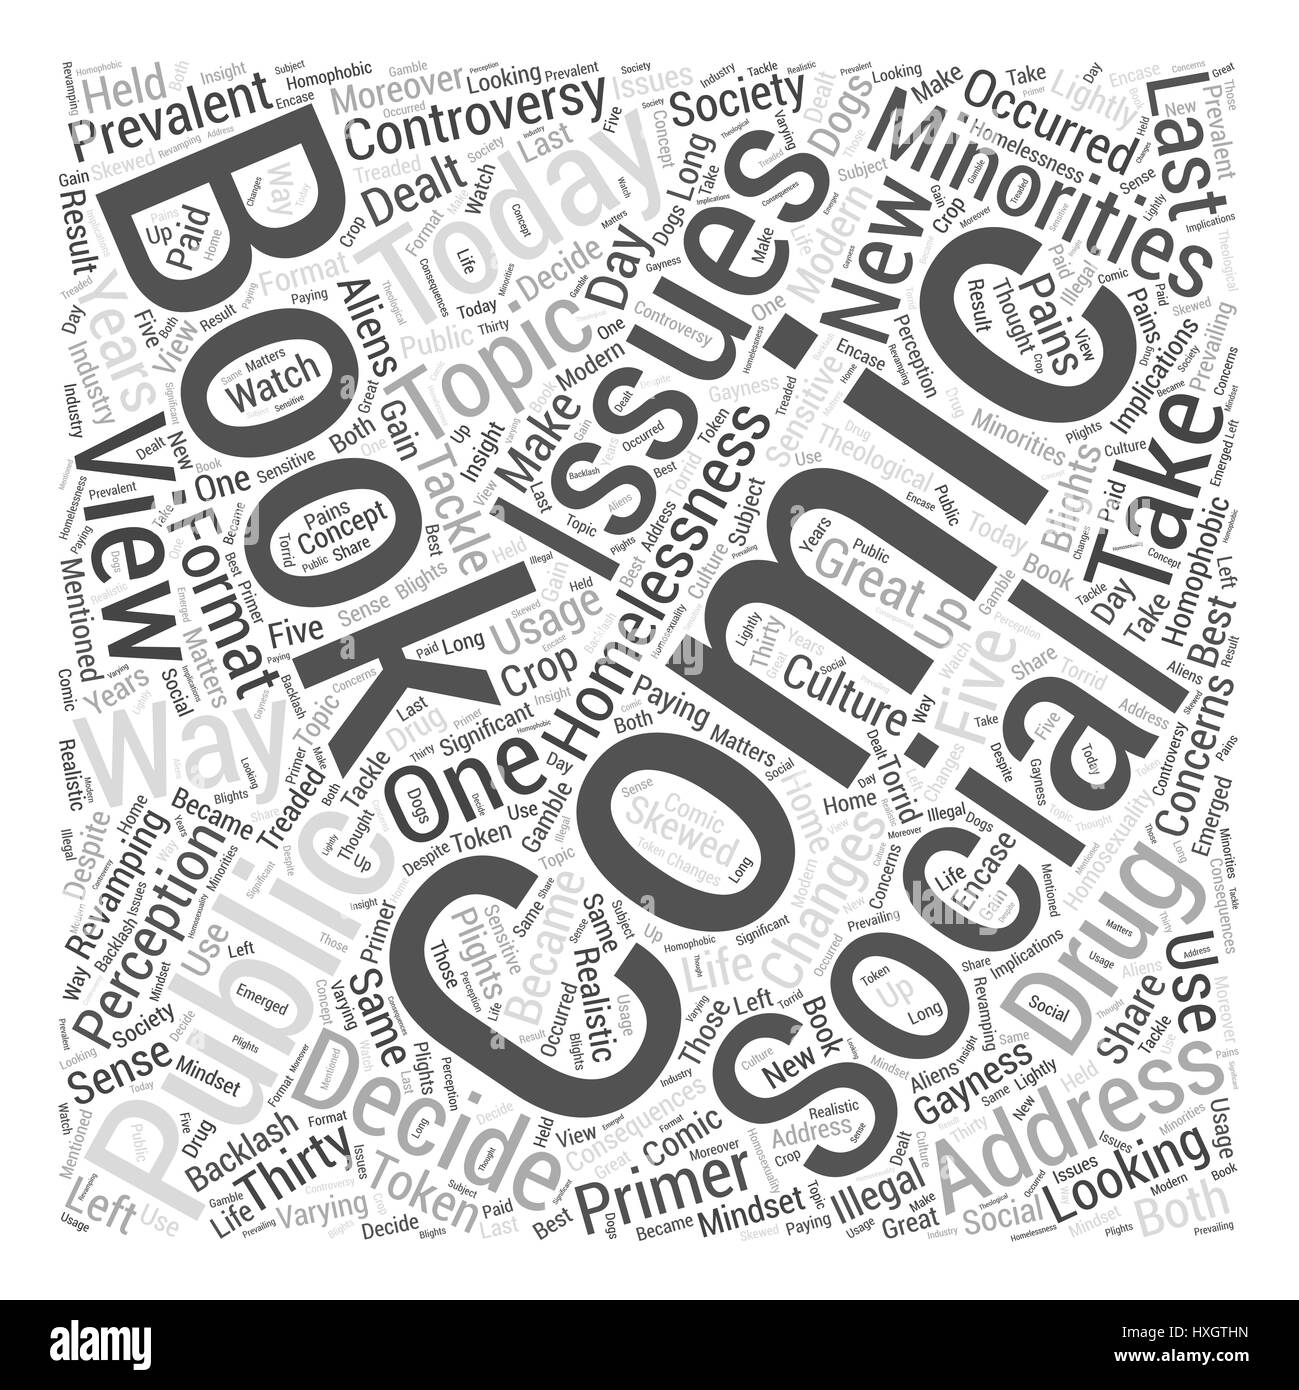 Social issues in comic books Word Cloud Concept - Stock Image